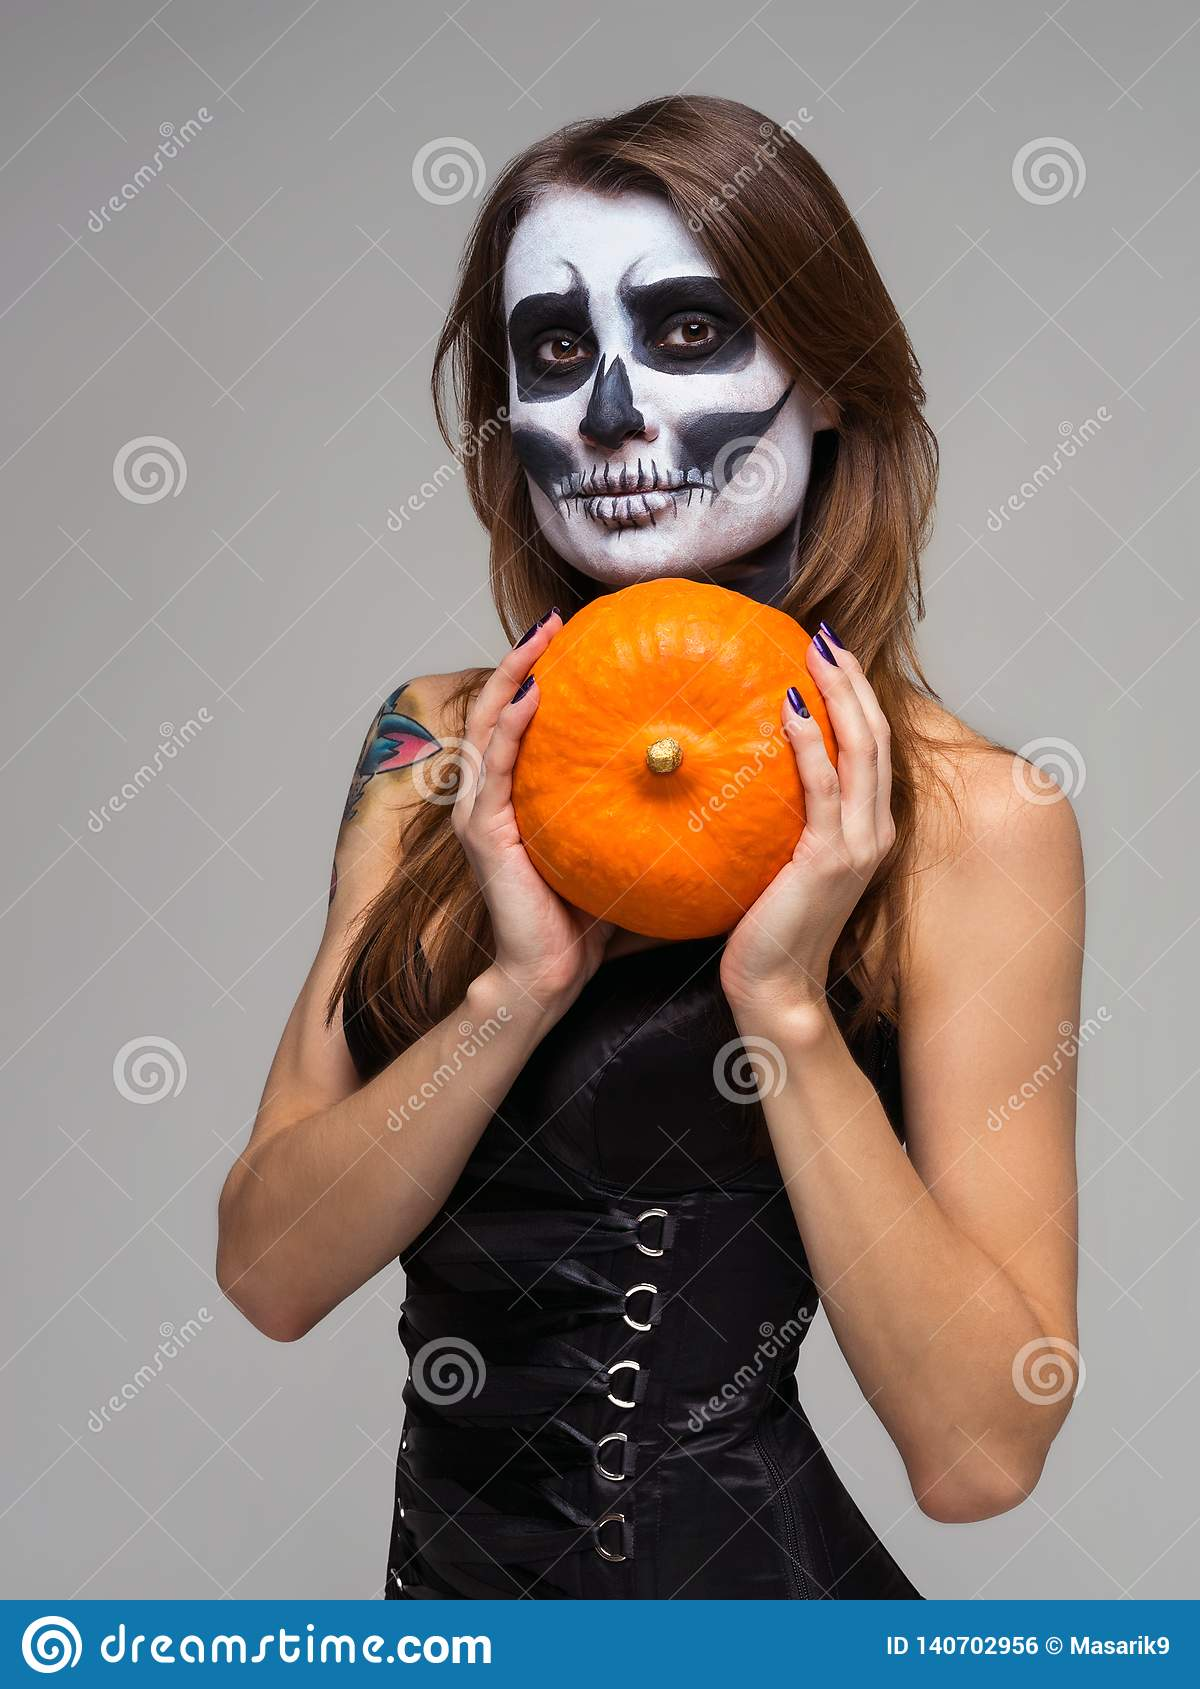 Portrait of woman with halloween skeleton makeup holding pumpkin over gray background